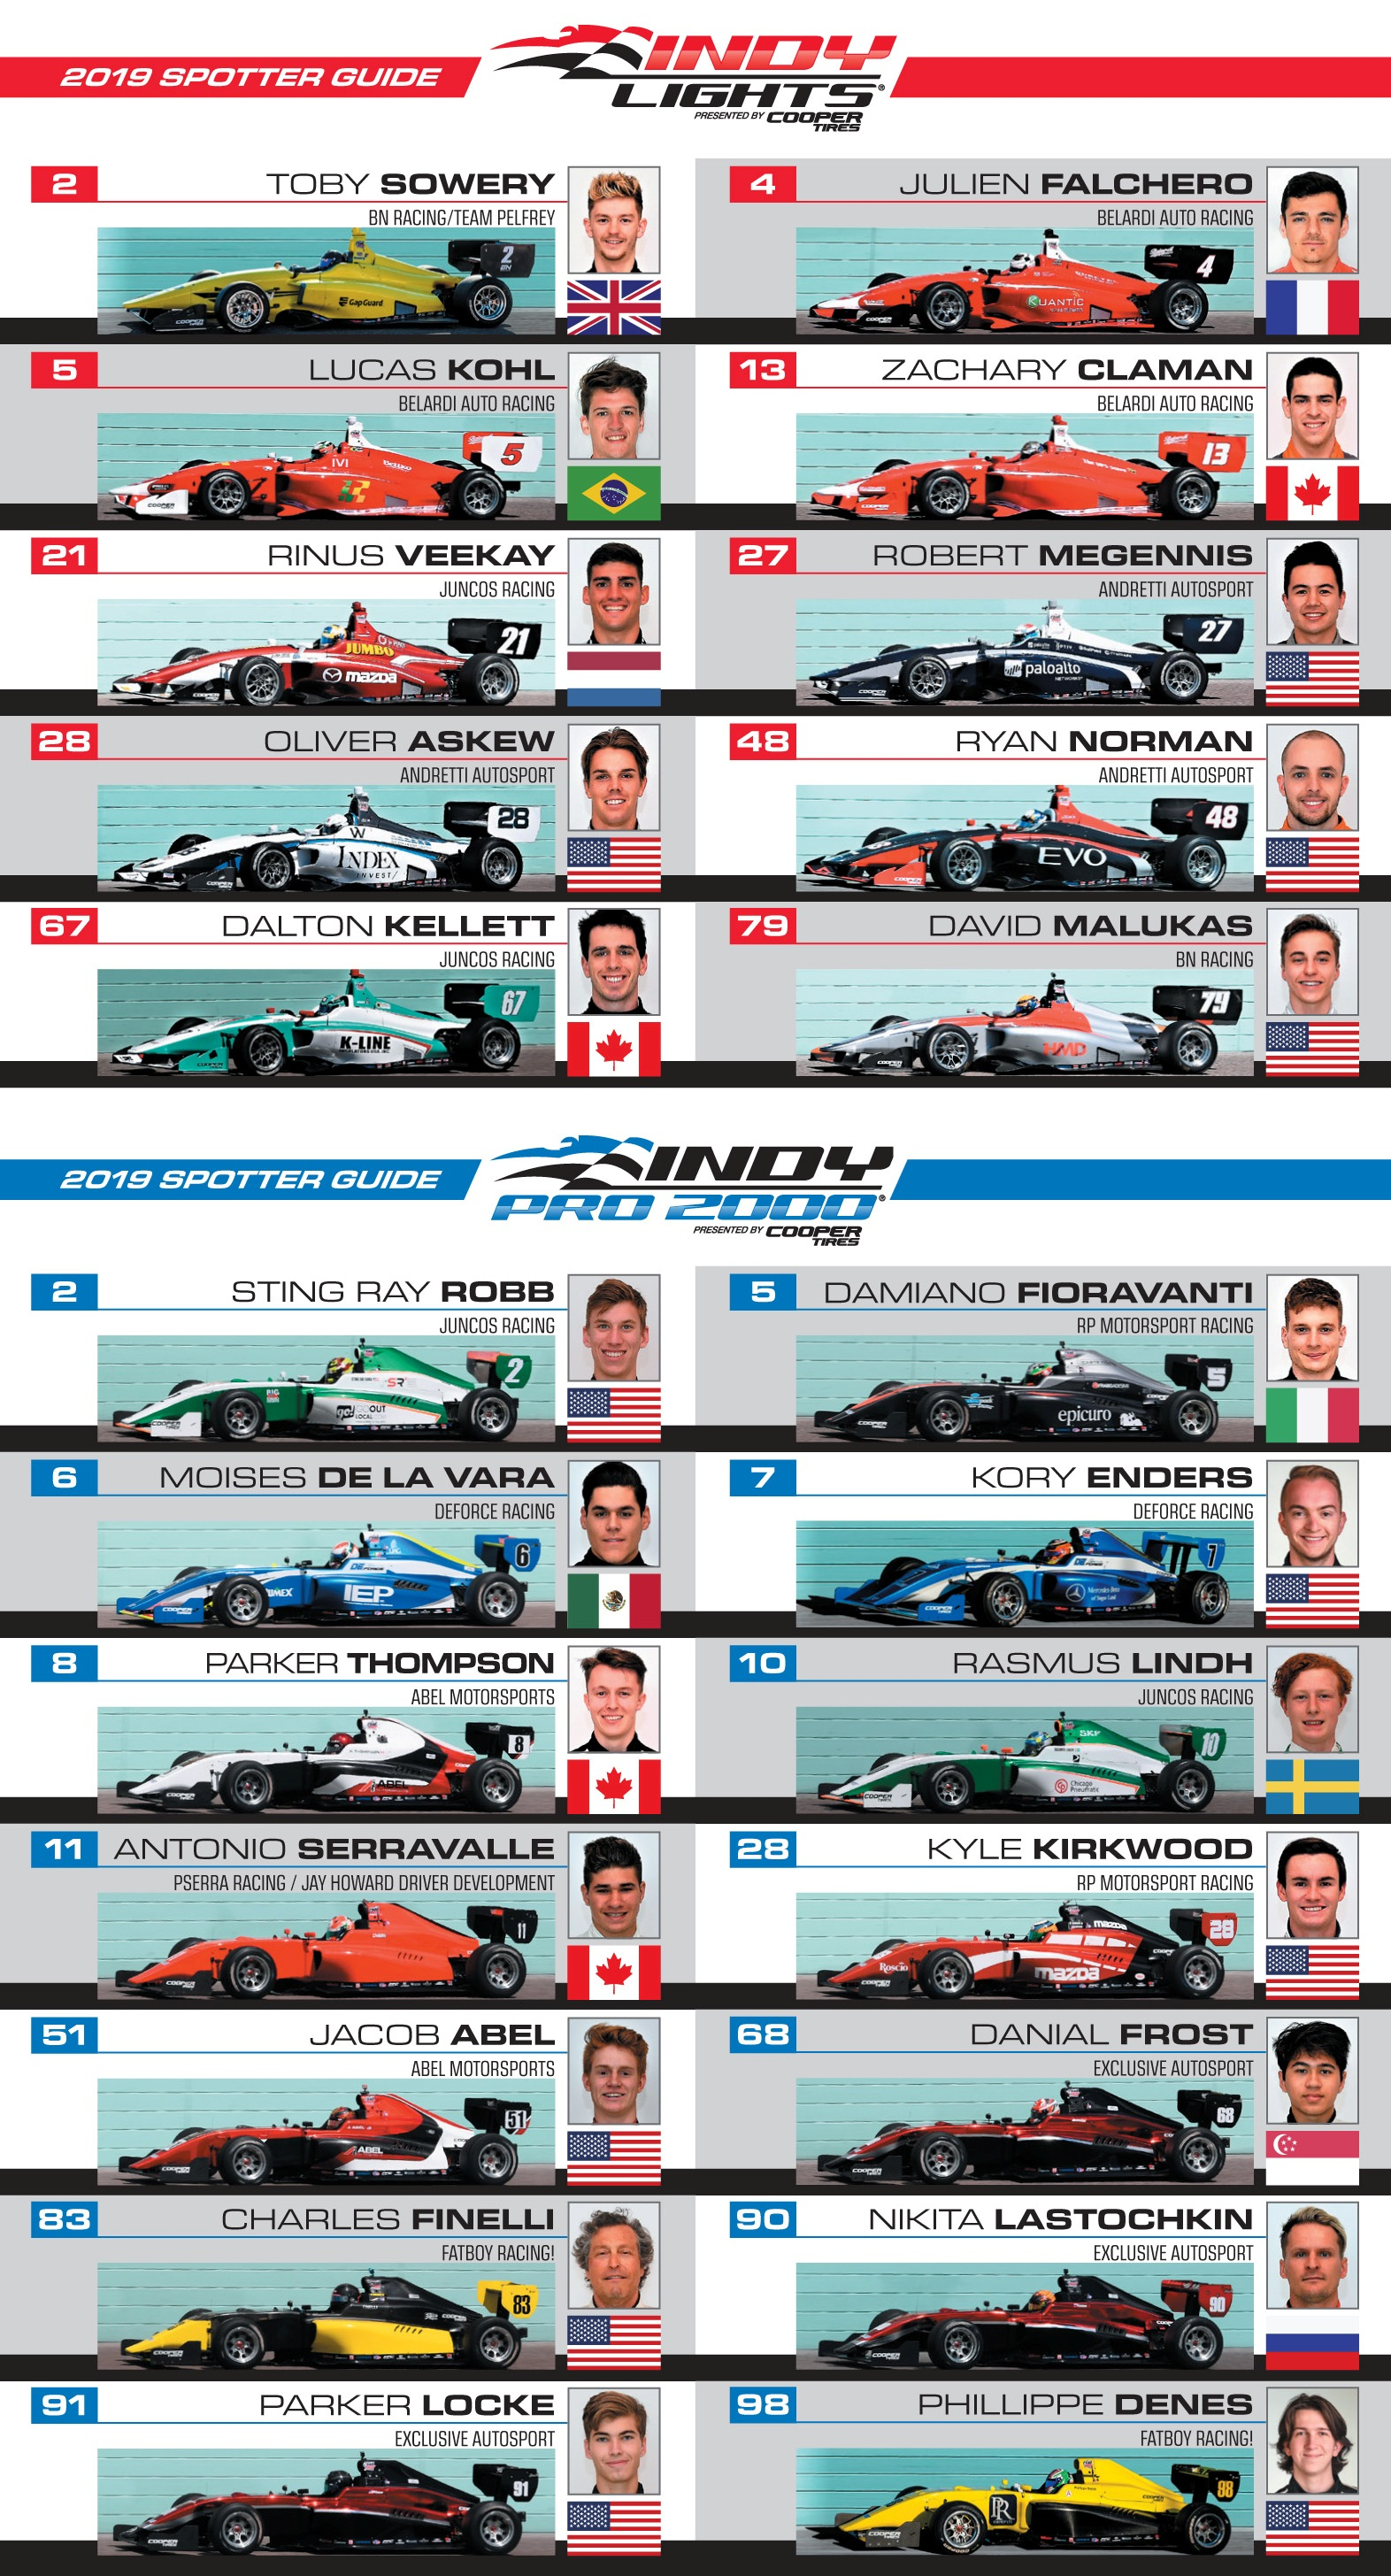 2019_RTI_SPOTTER_GUIDE_MAR17-2